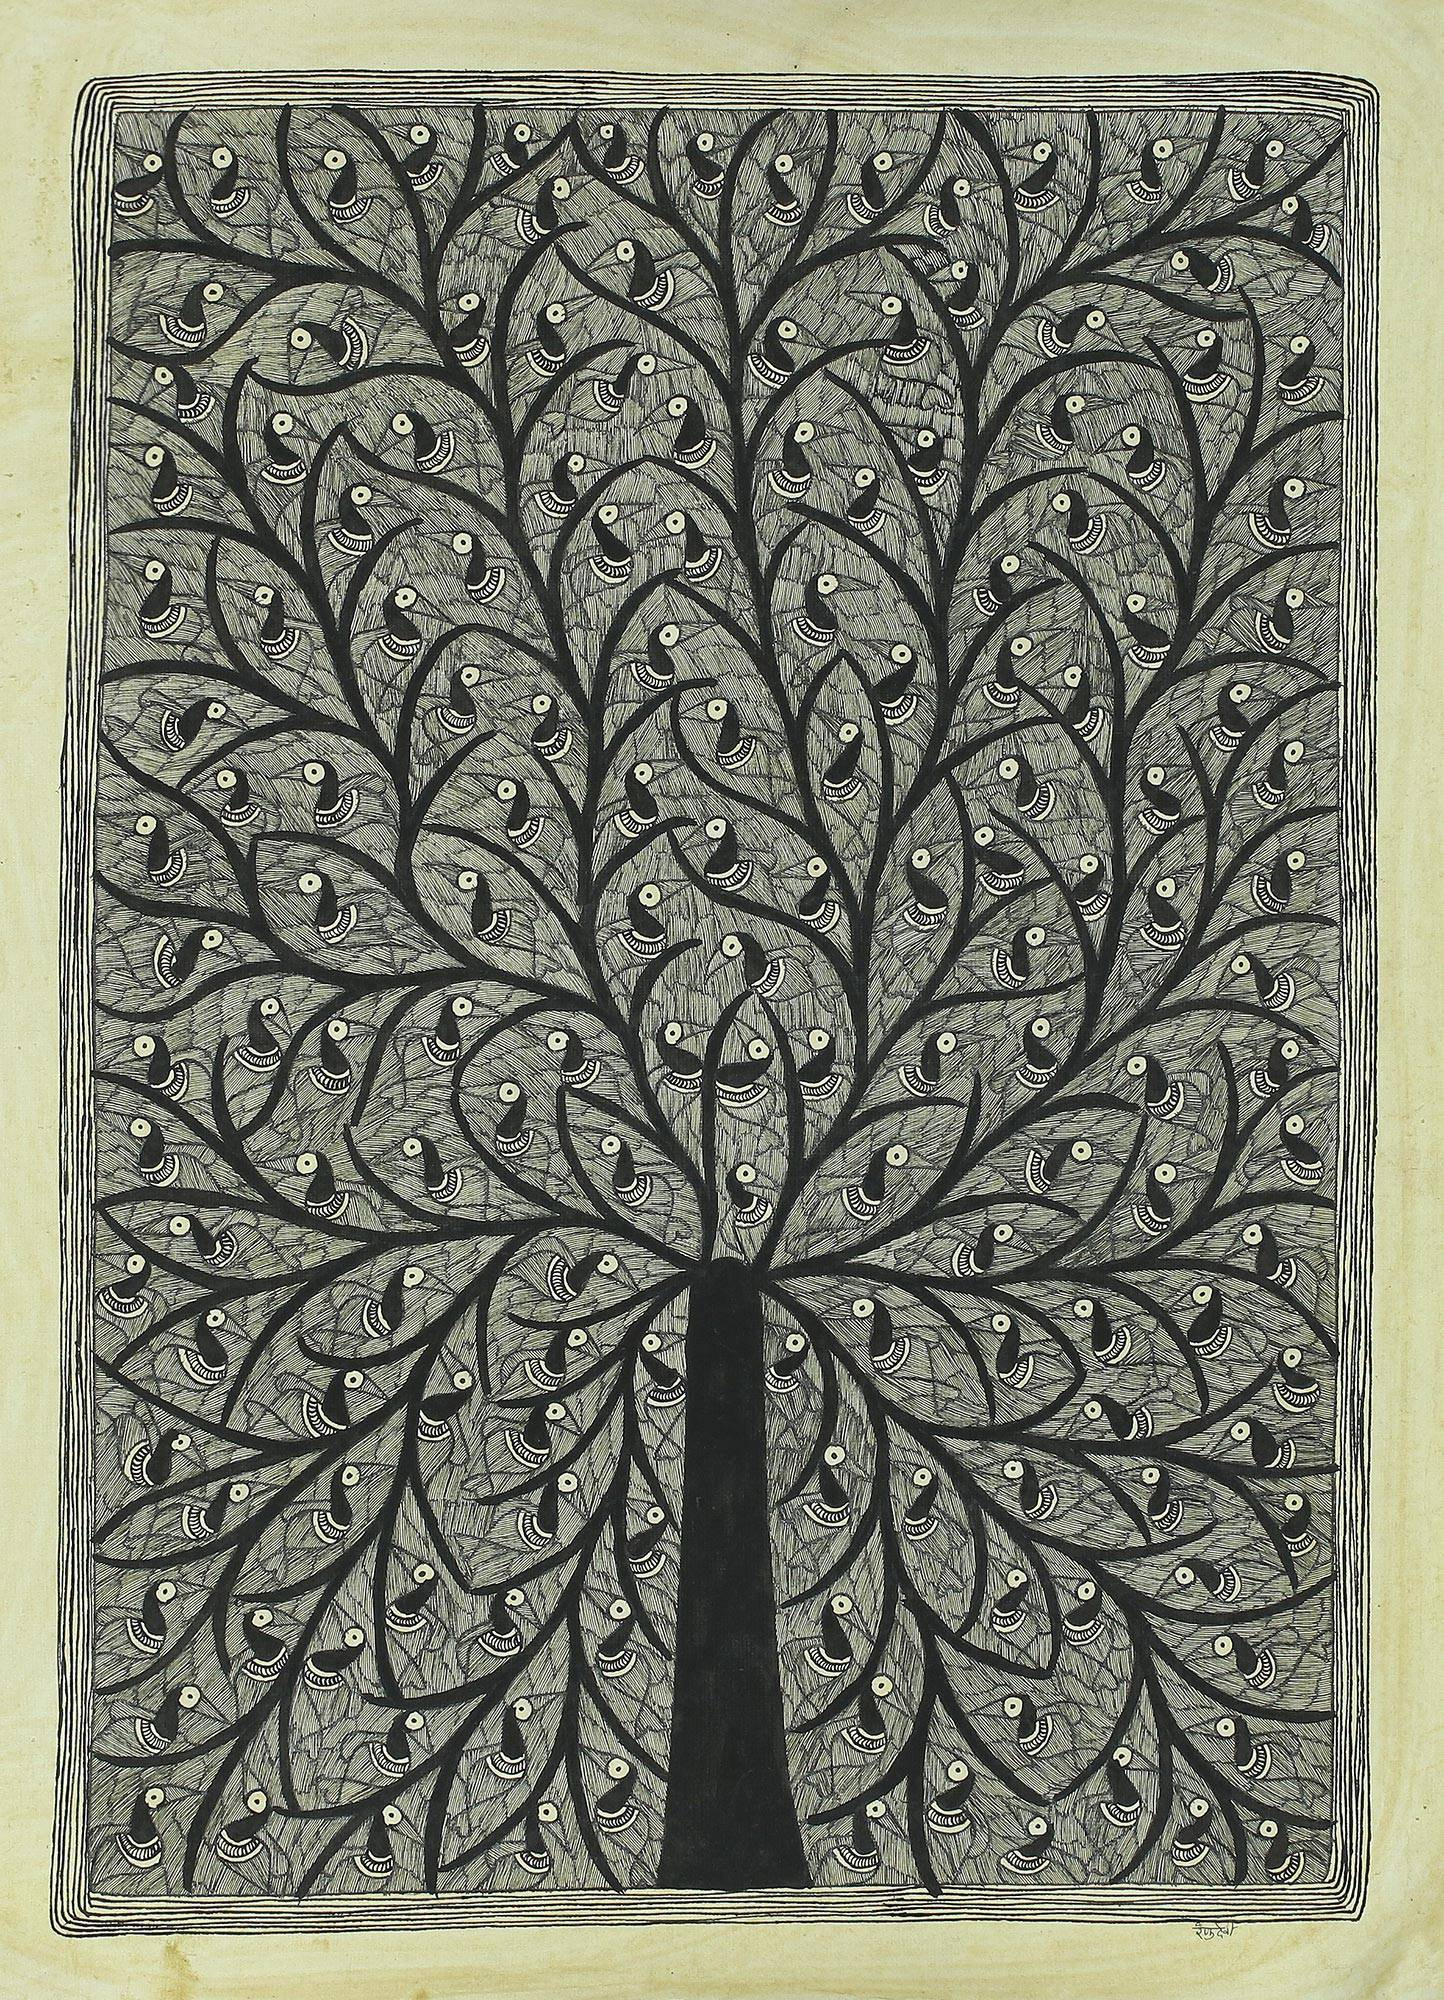 Black And White Madhubani Painting Of The Tree Of Life Birds In The Tree Of Life